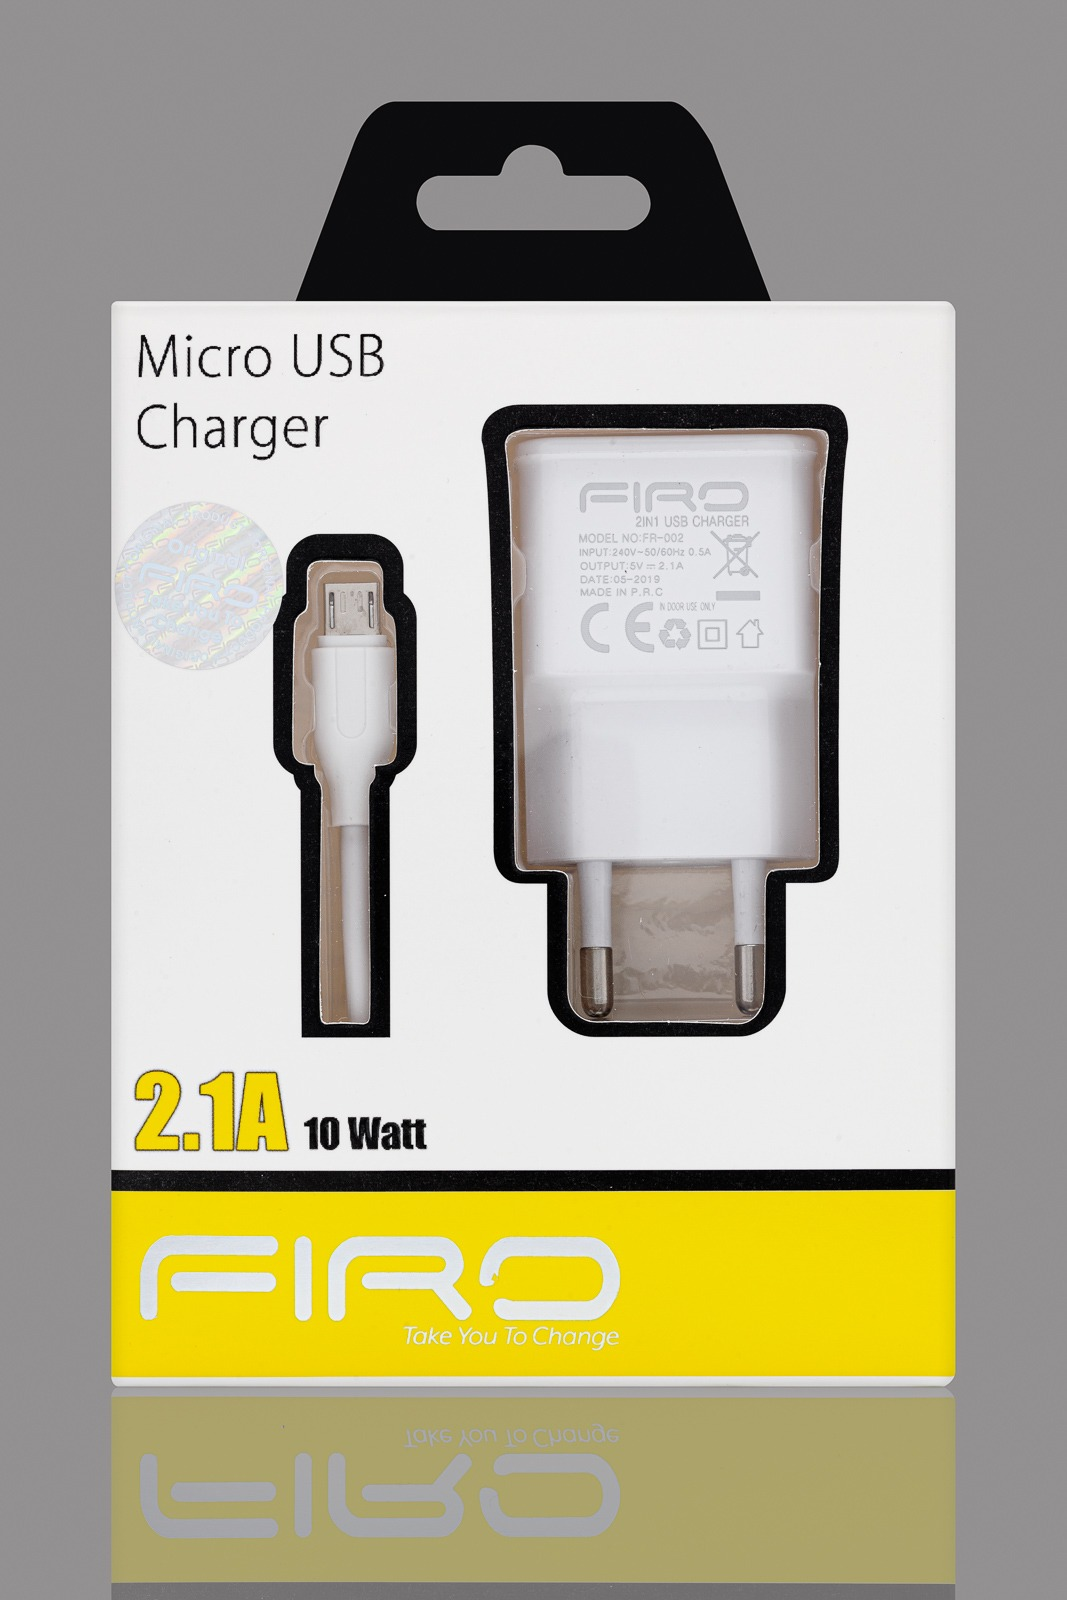 FIRO MICRO USB CHARGER 2-1A 10W